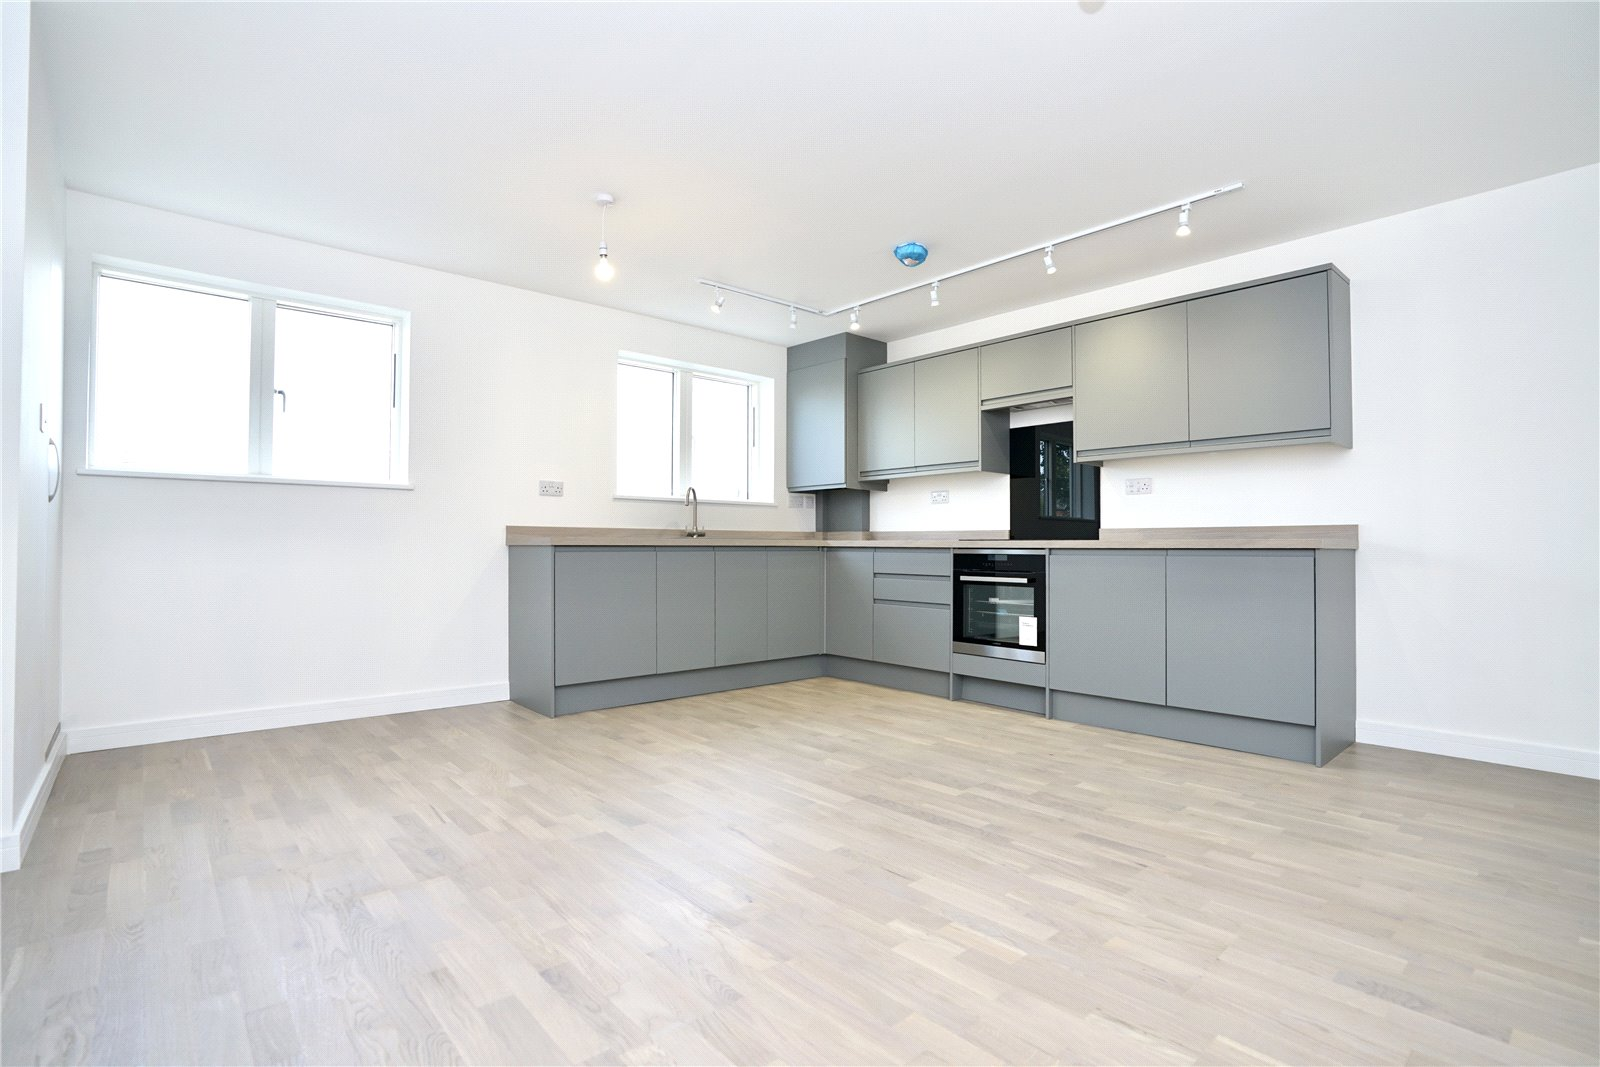 2 bed apartment for sale in Fairfields Drive, PE26 1NQ, PE26